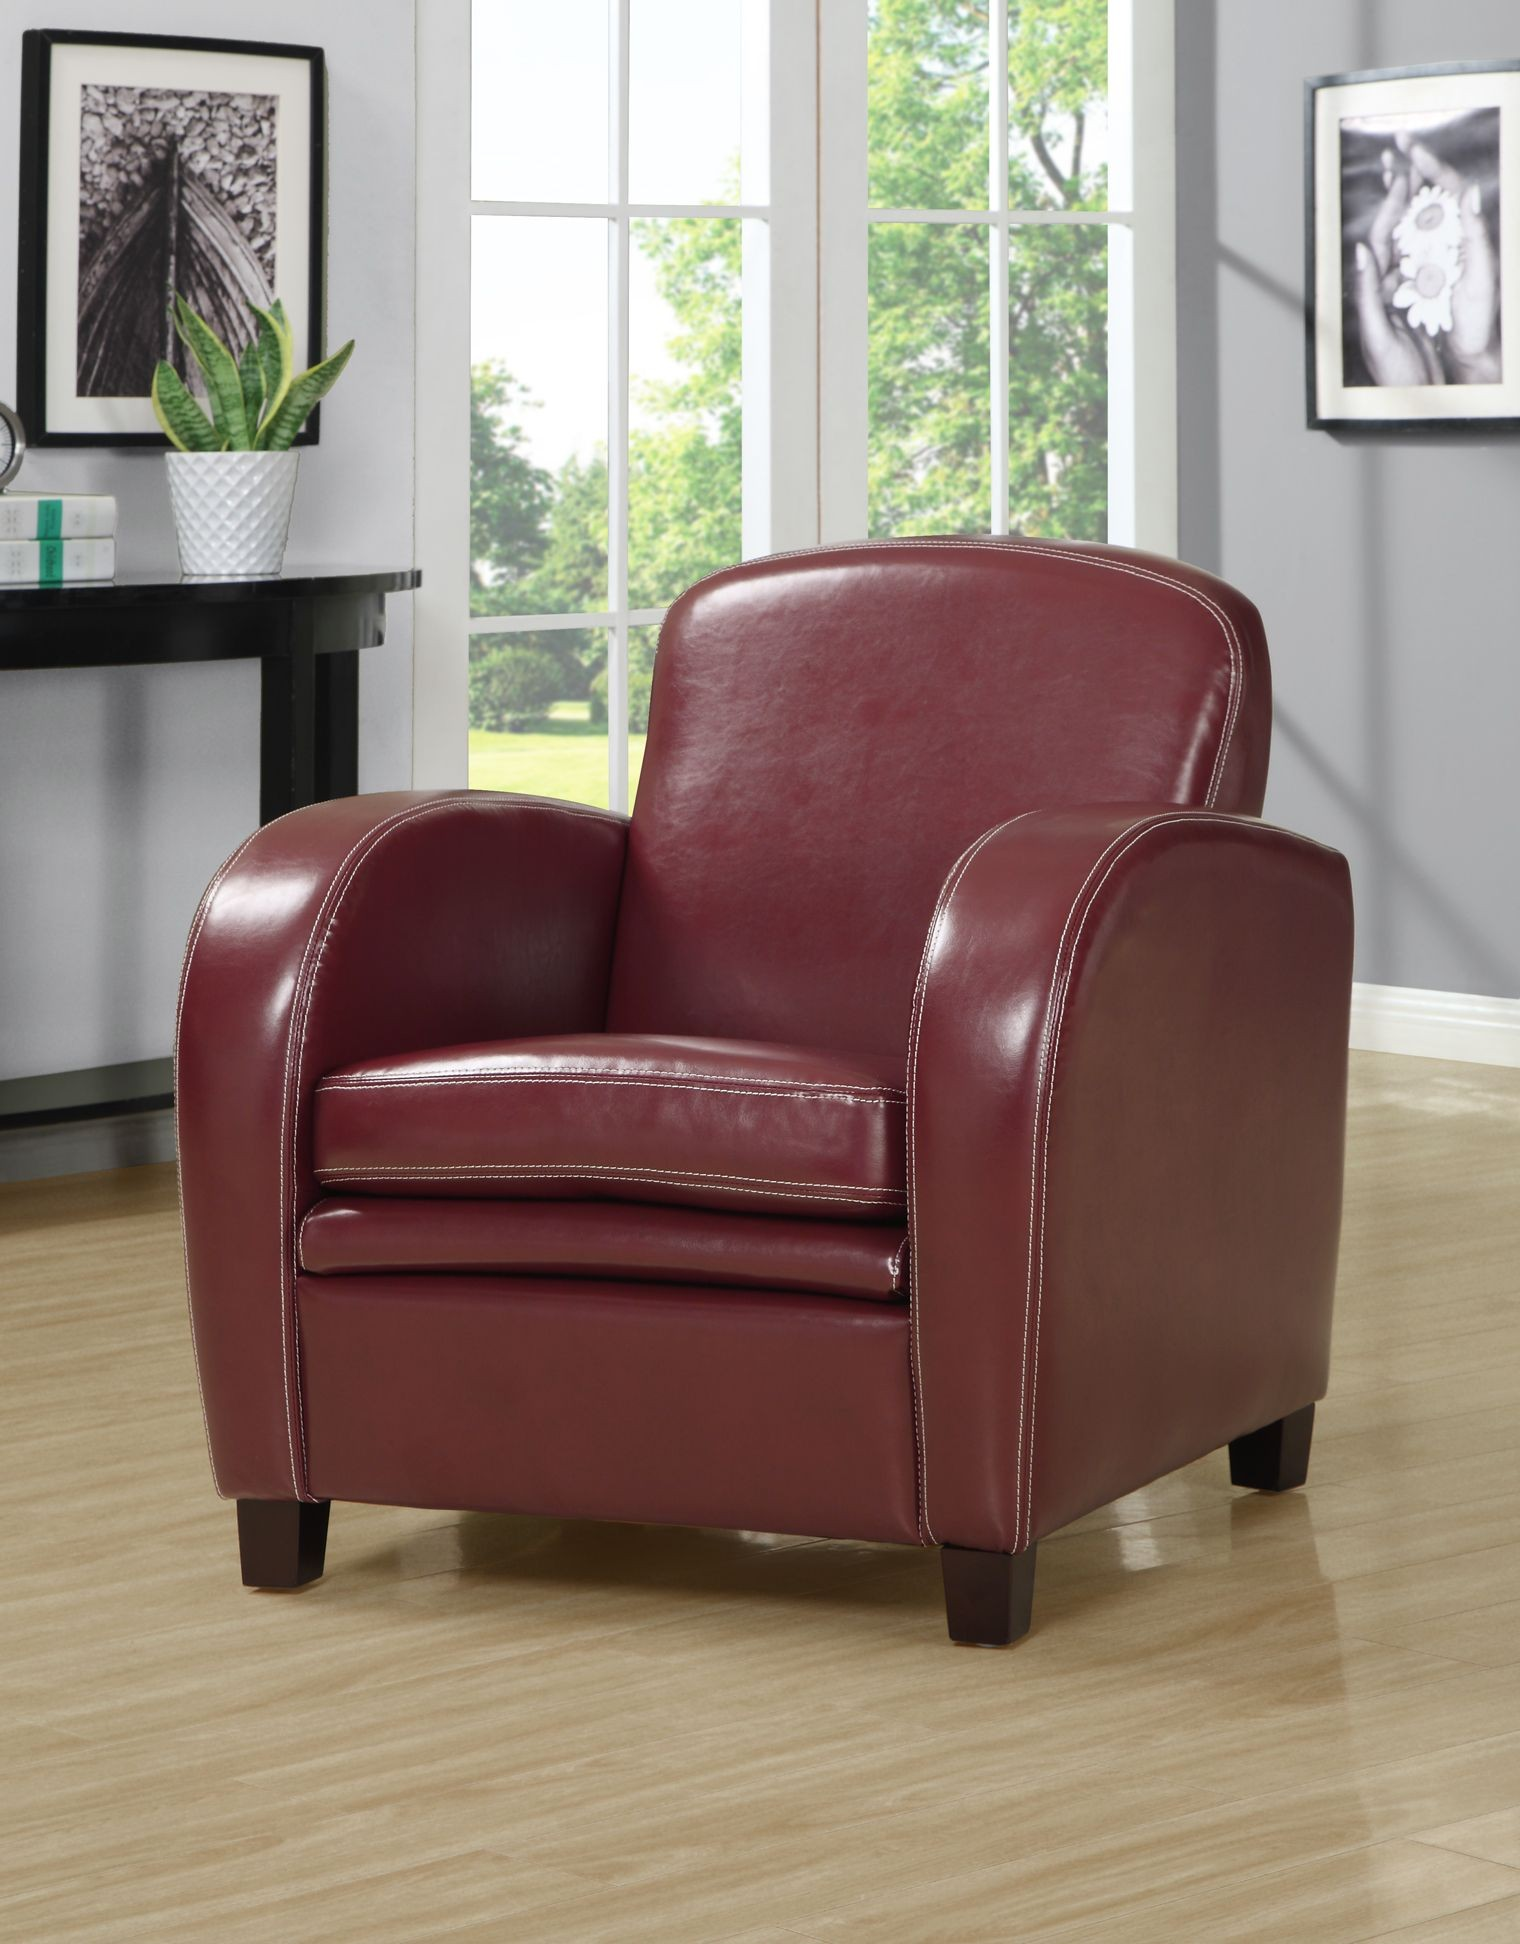 Red Accent Chair From Monarch 8039 Coleman Furniture